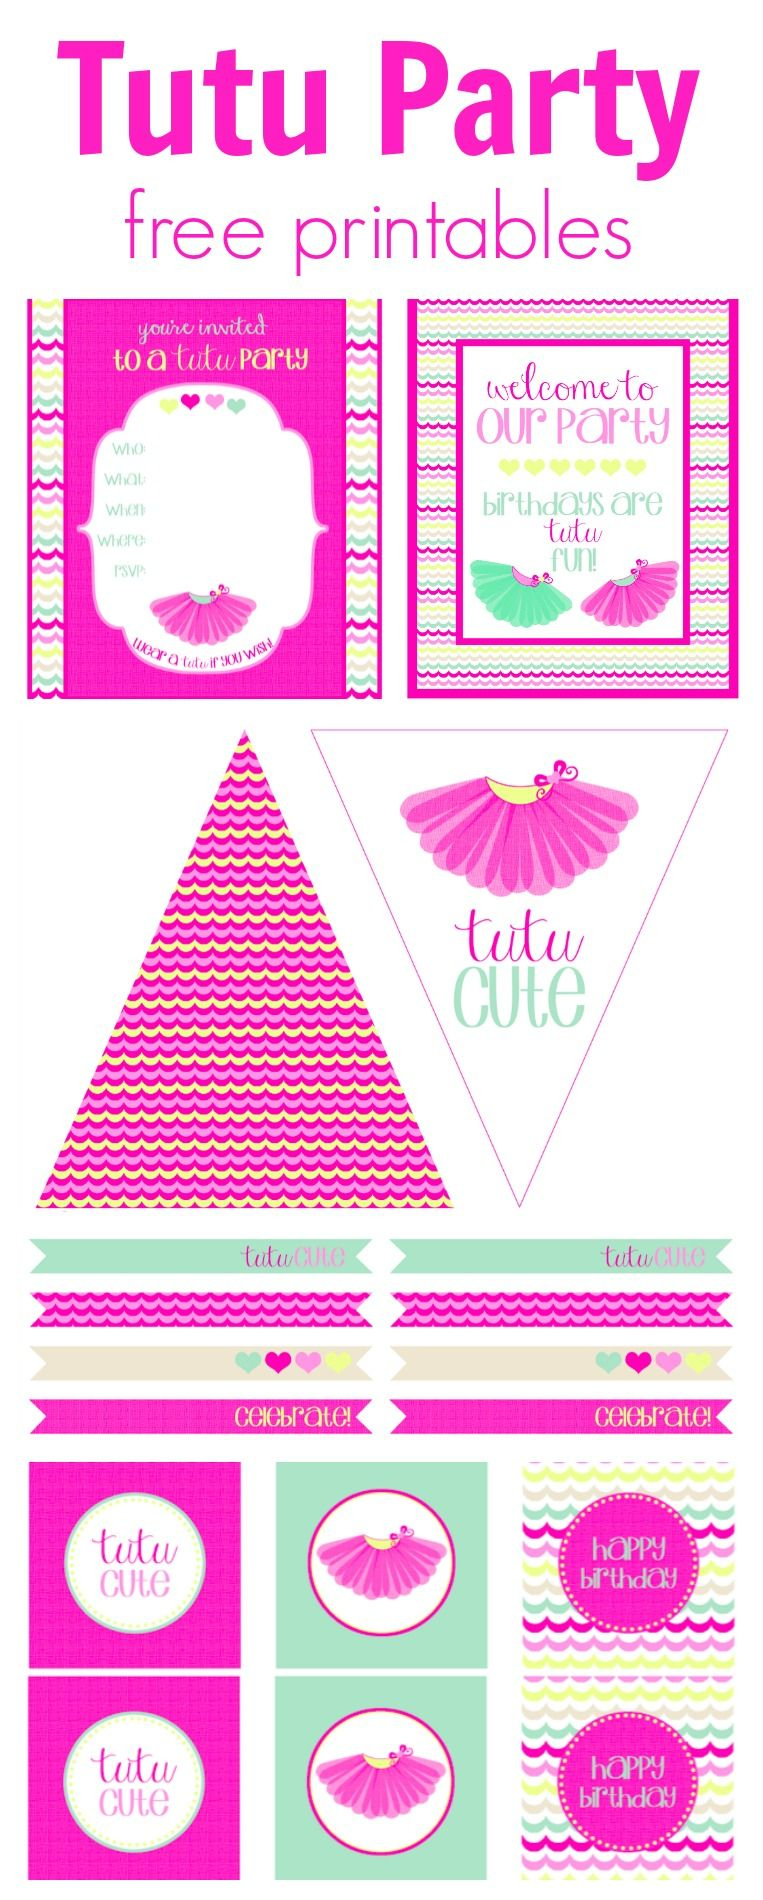 Tutu Party Free Printables | Perfect Birthday Or Playdate Theme <3 - Play Date Invitations Free Printable